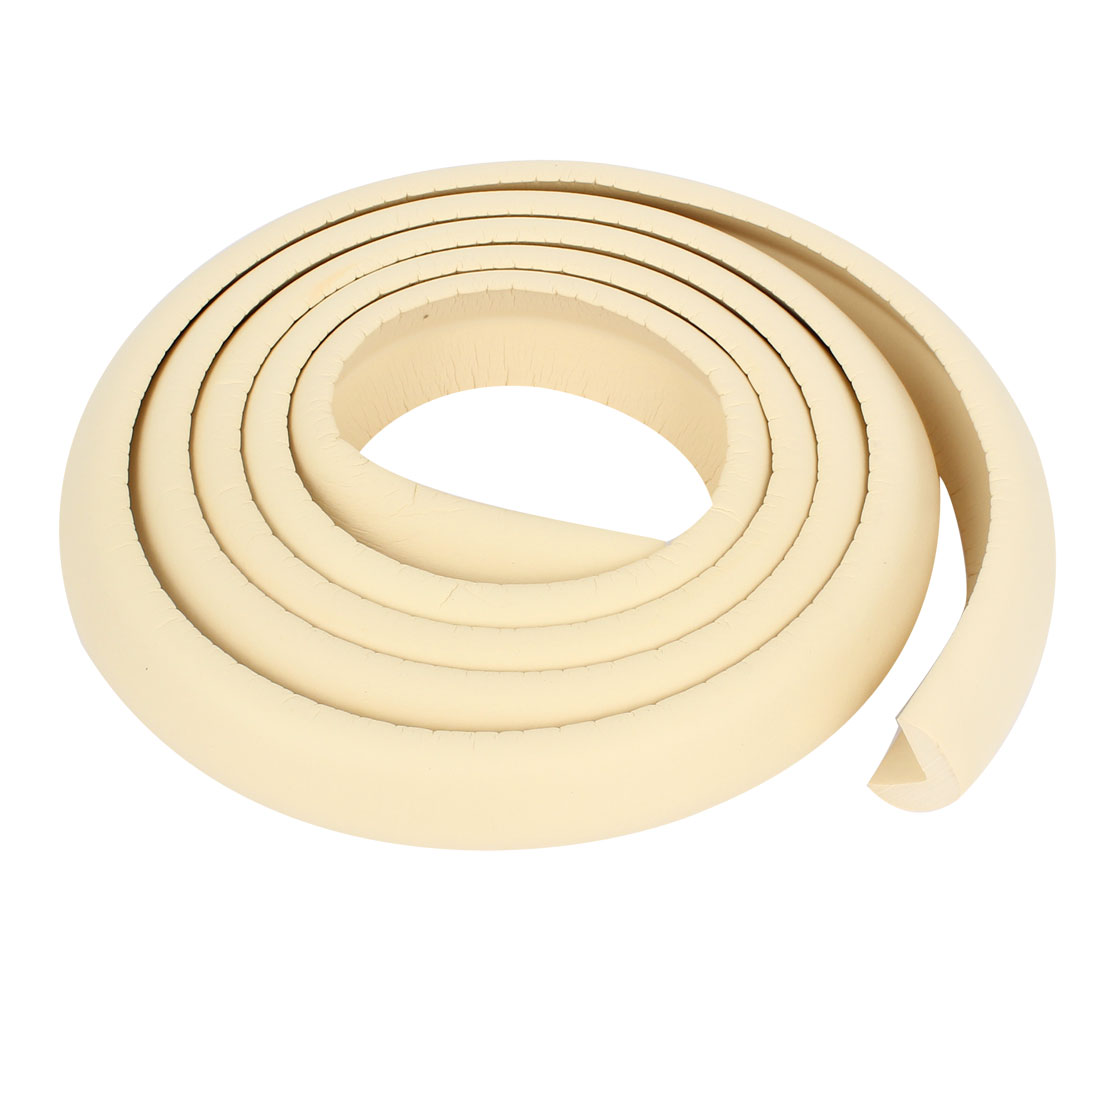 Unique Bargains 2m Long 3cm Width Off White Safety Edge Protector Table Corner Guard Strip